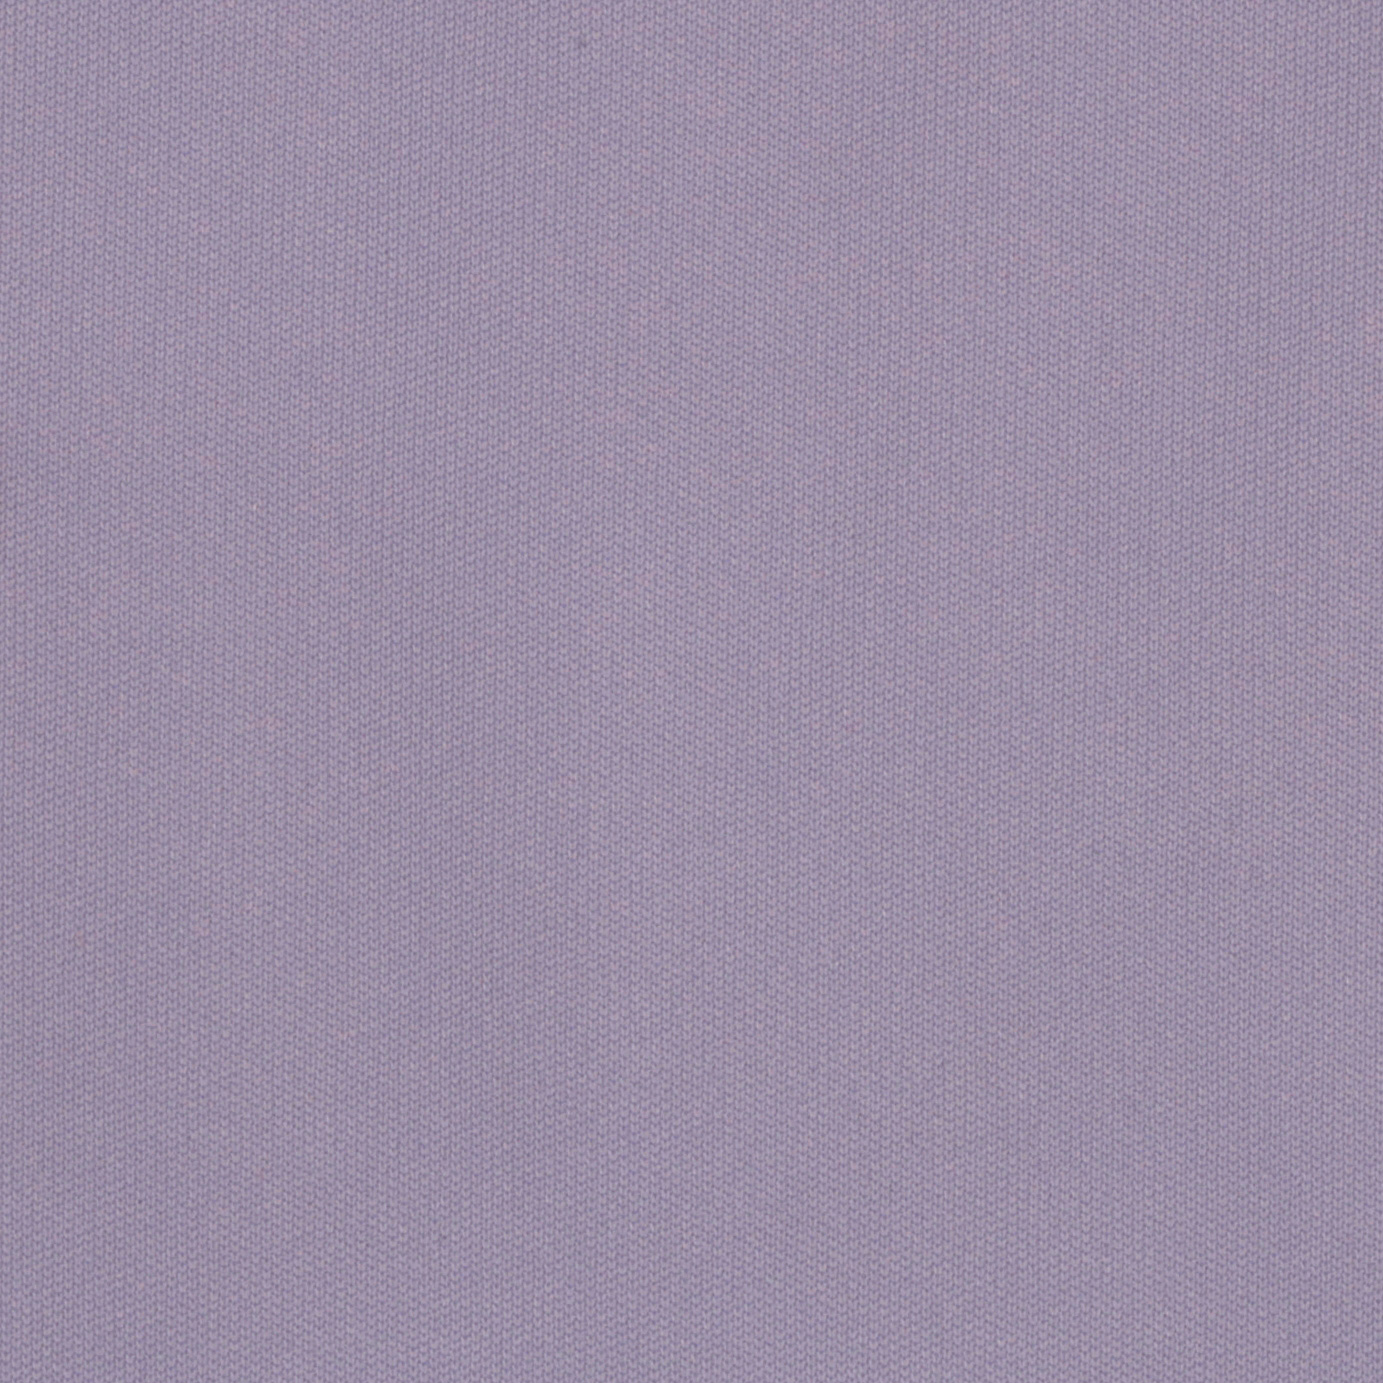 Akas Tex Pul (polyurethane Laminate) 1mil Light Purple Fabric